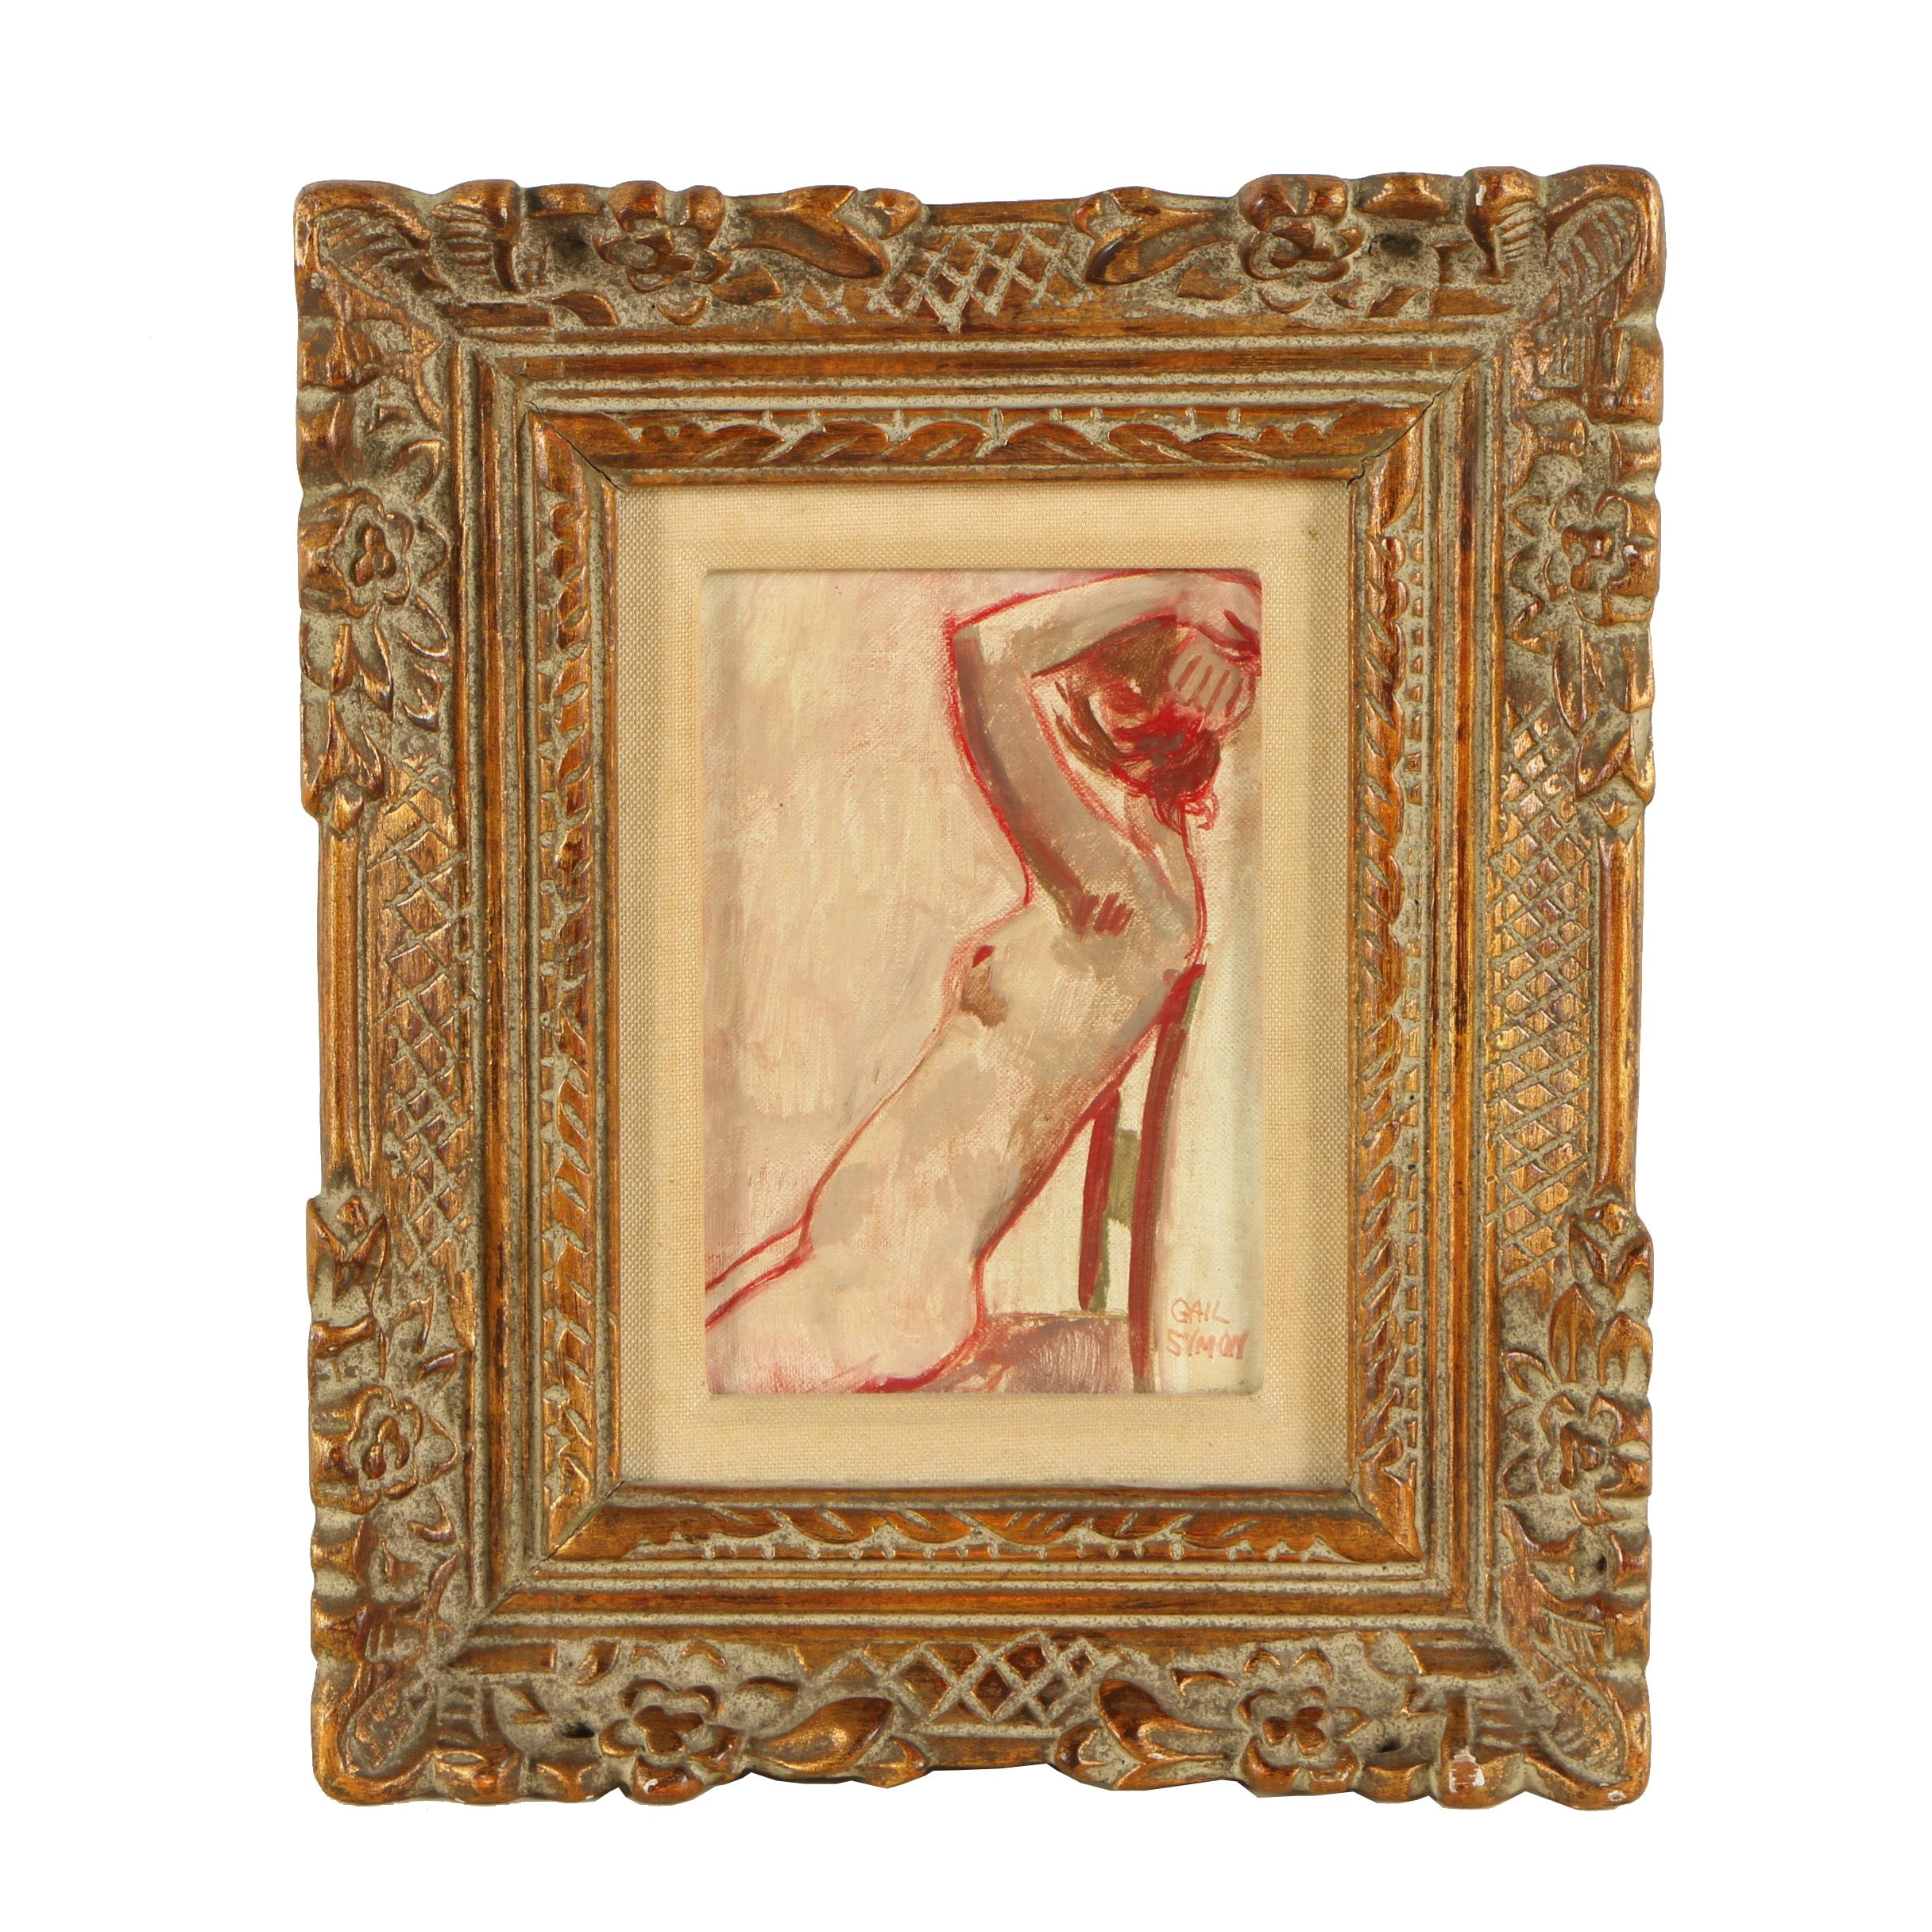 Gail Symon Oil Painting of a Female Figure